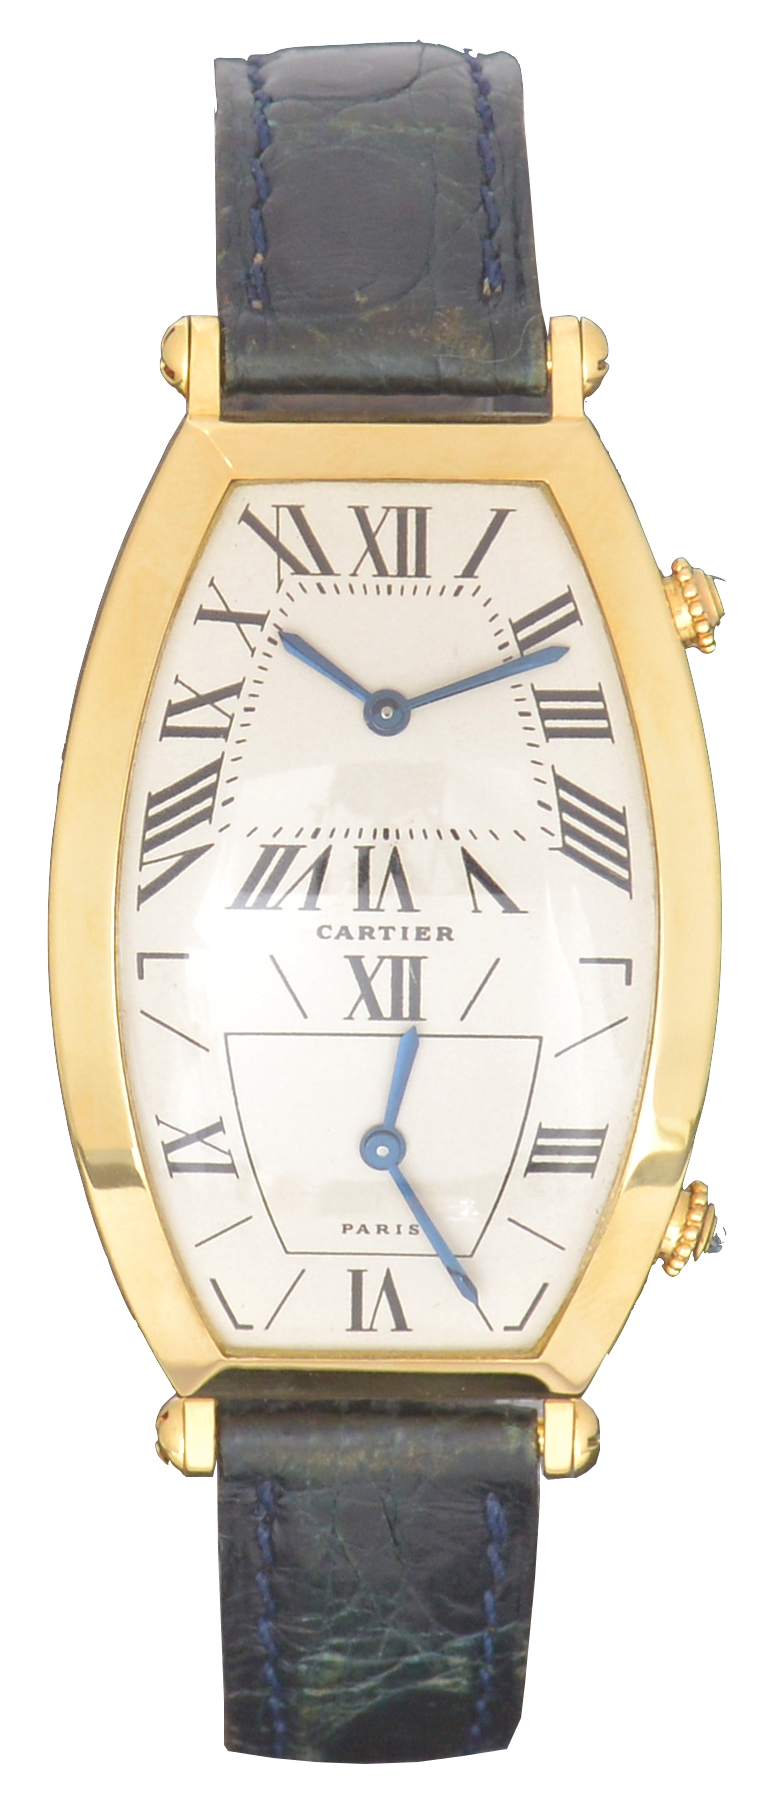 Cartier Yellow Gold Tonneau Dual Time Zone, Service Papers